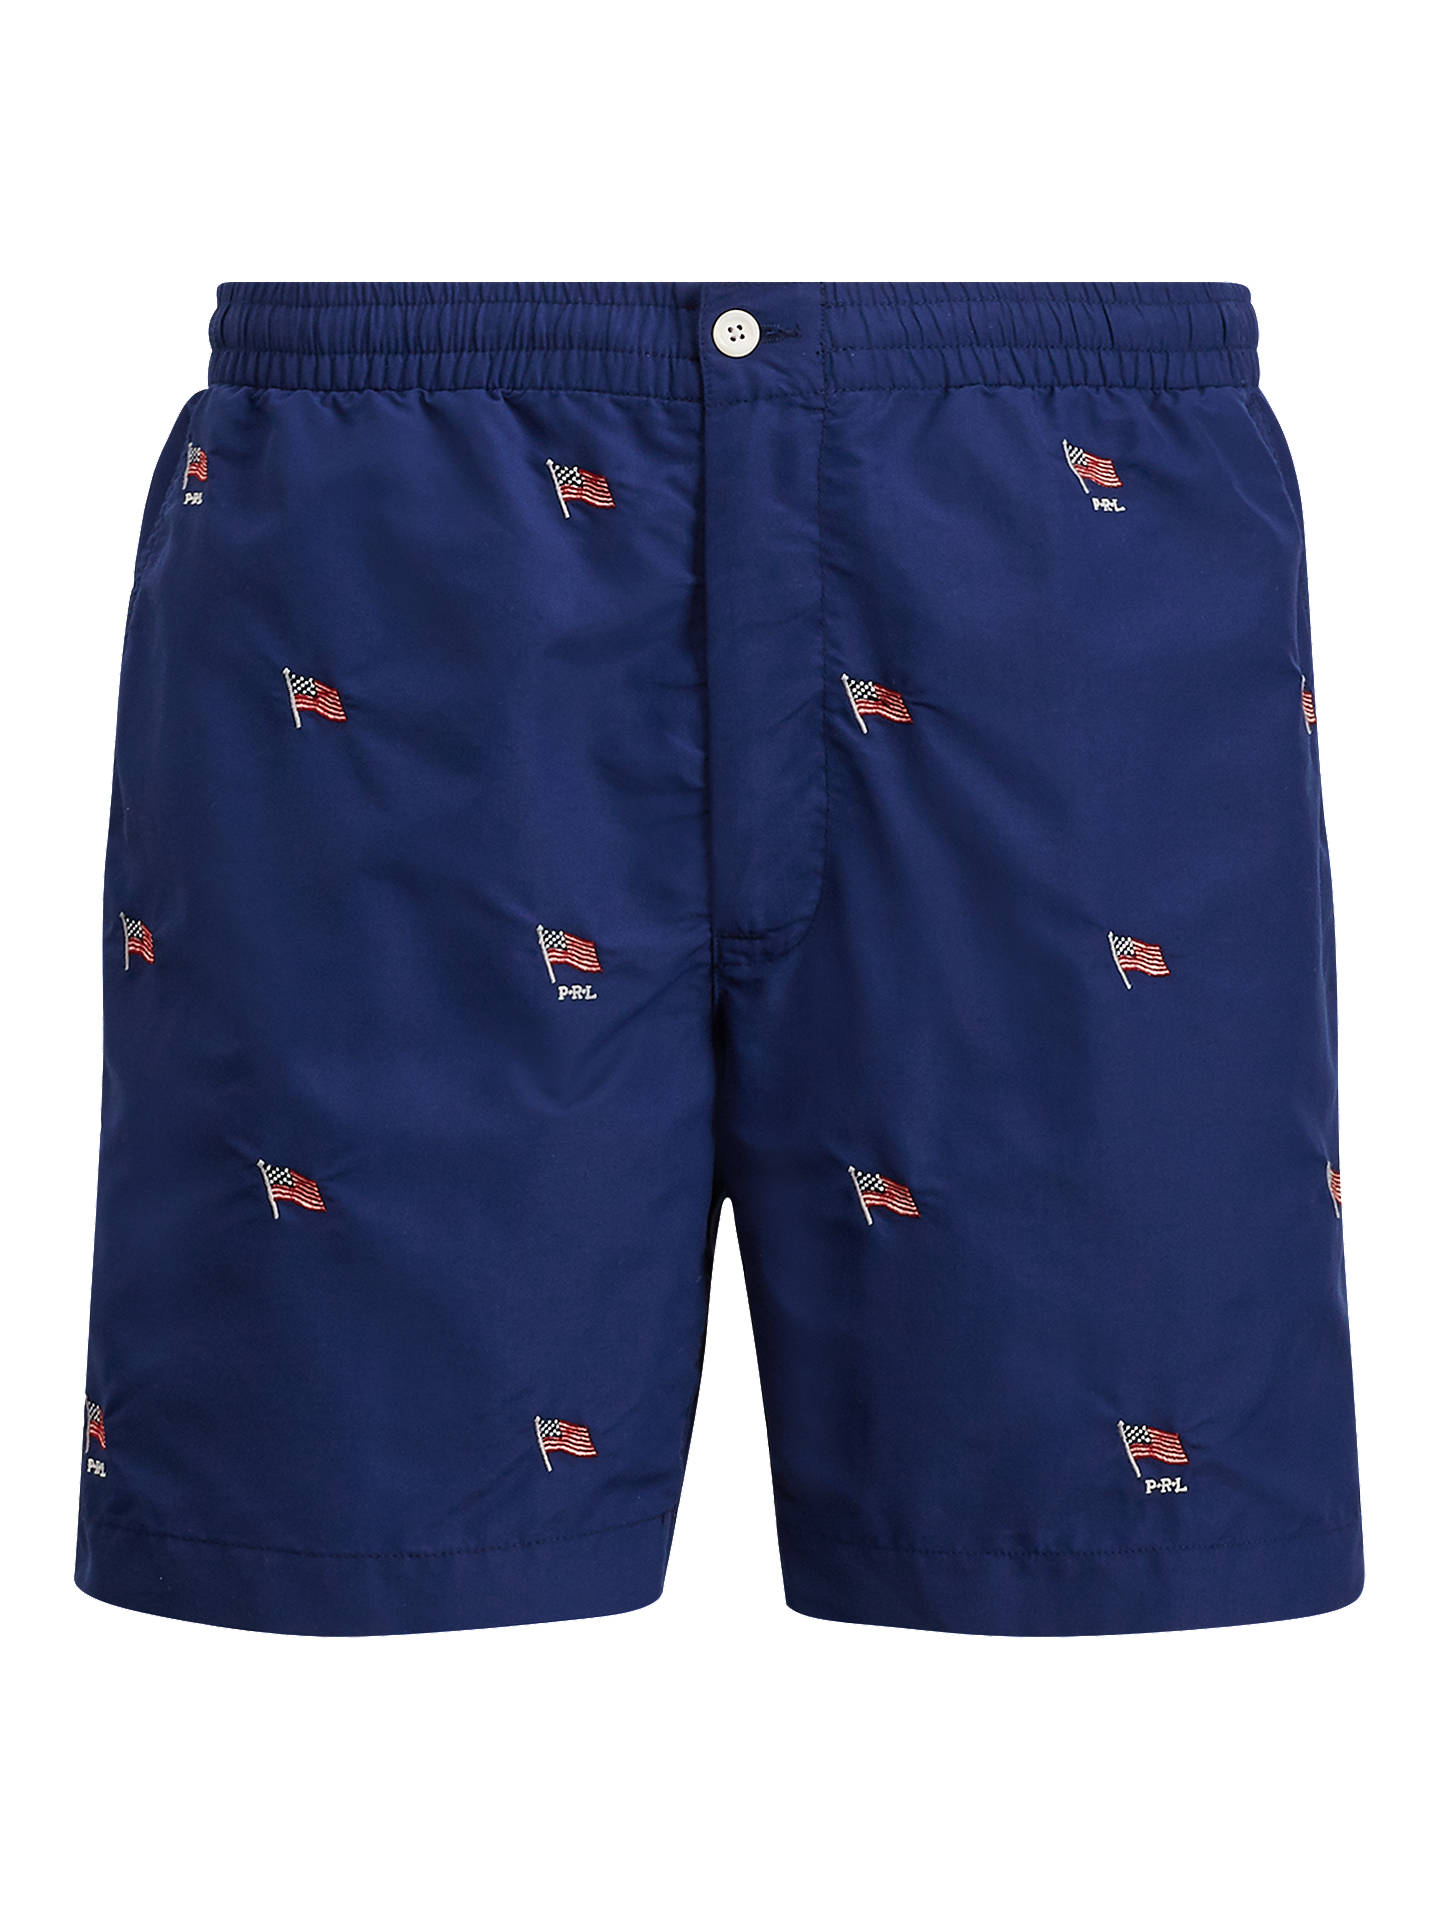 dfe7649538 Buy Polo Ralph Lauren Prepster Holiday Flag Swim Shorts, Navy, S Online at  johnlewis ...